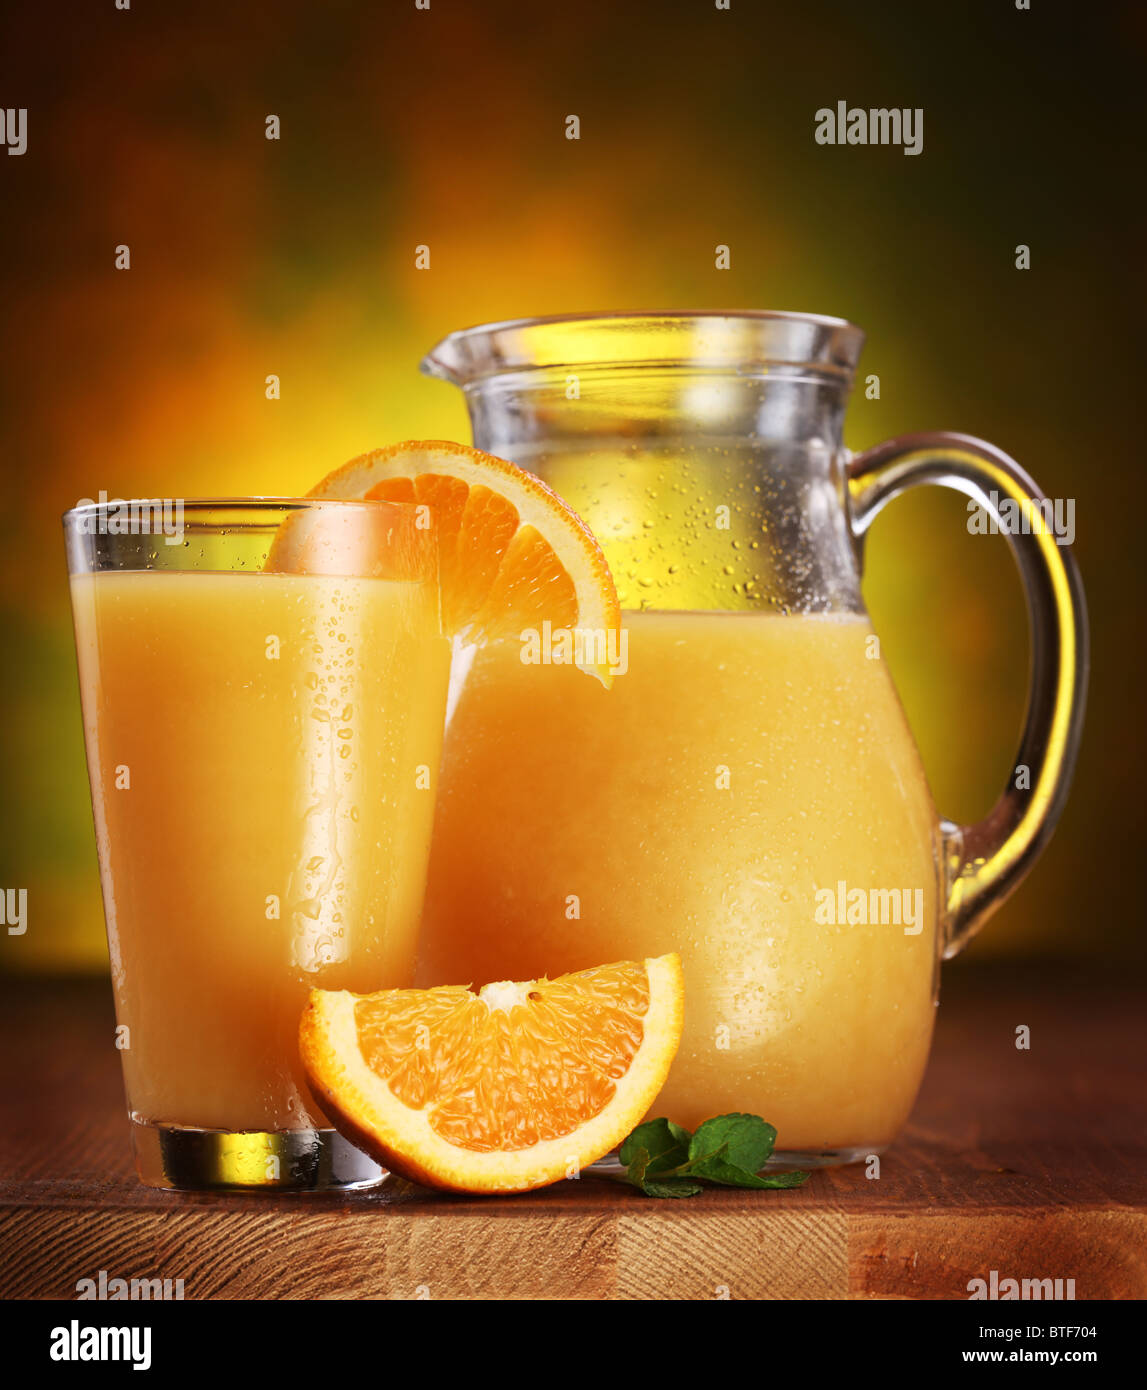 Still life: oranges, glass of juice and jug full of juice on a wooden table. - Stock Image